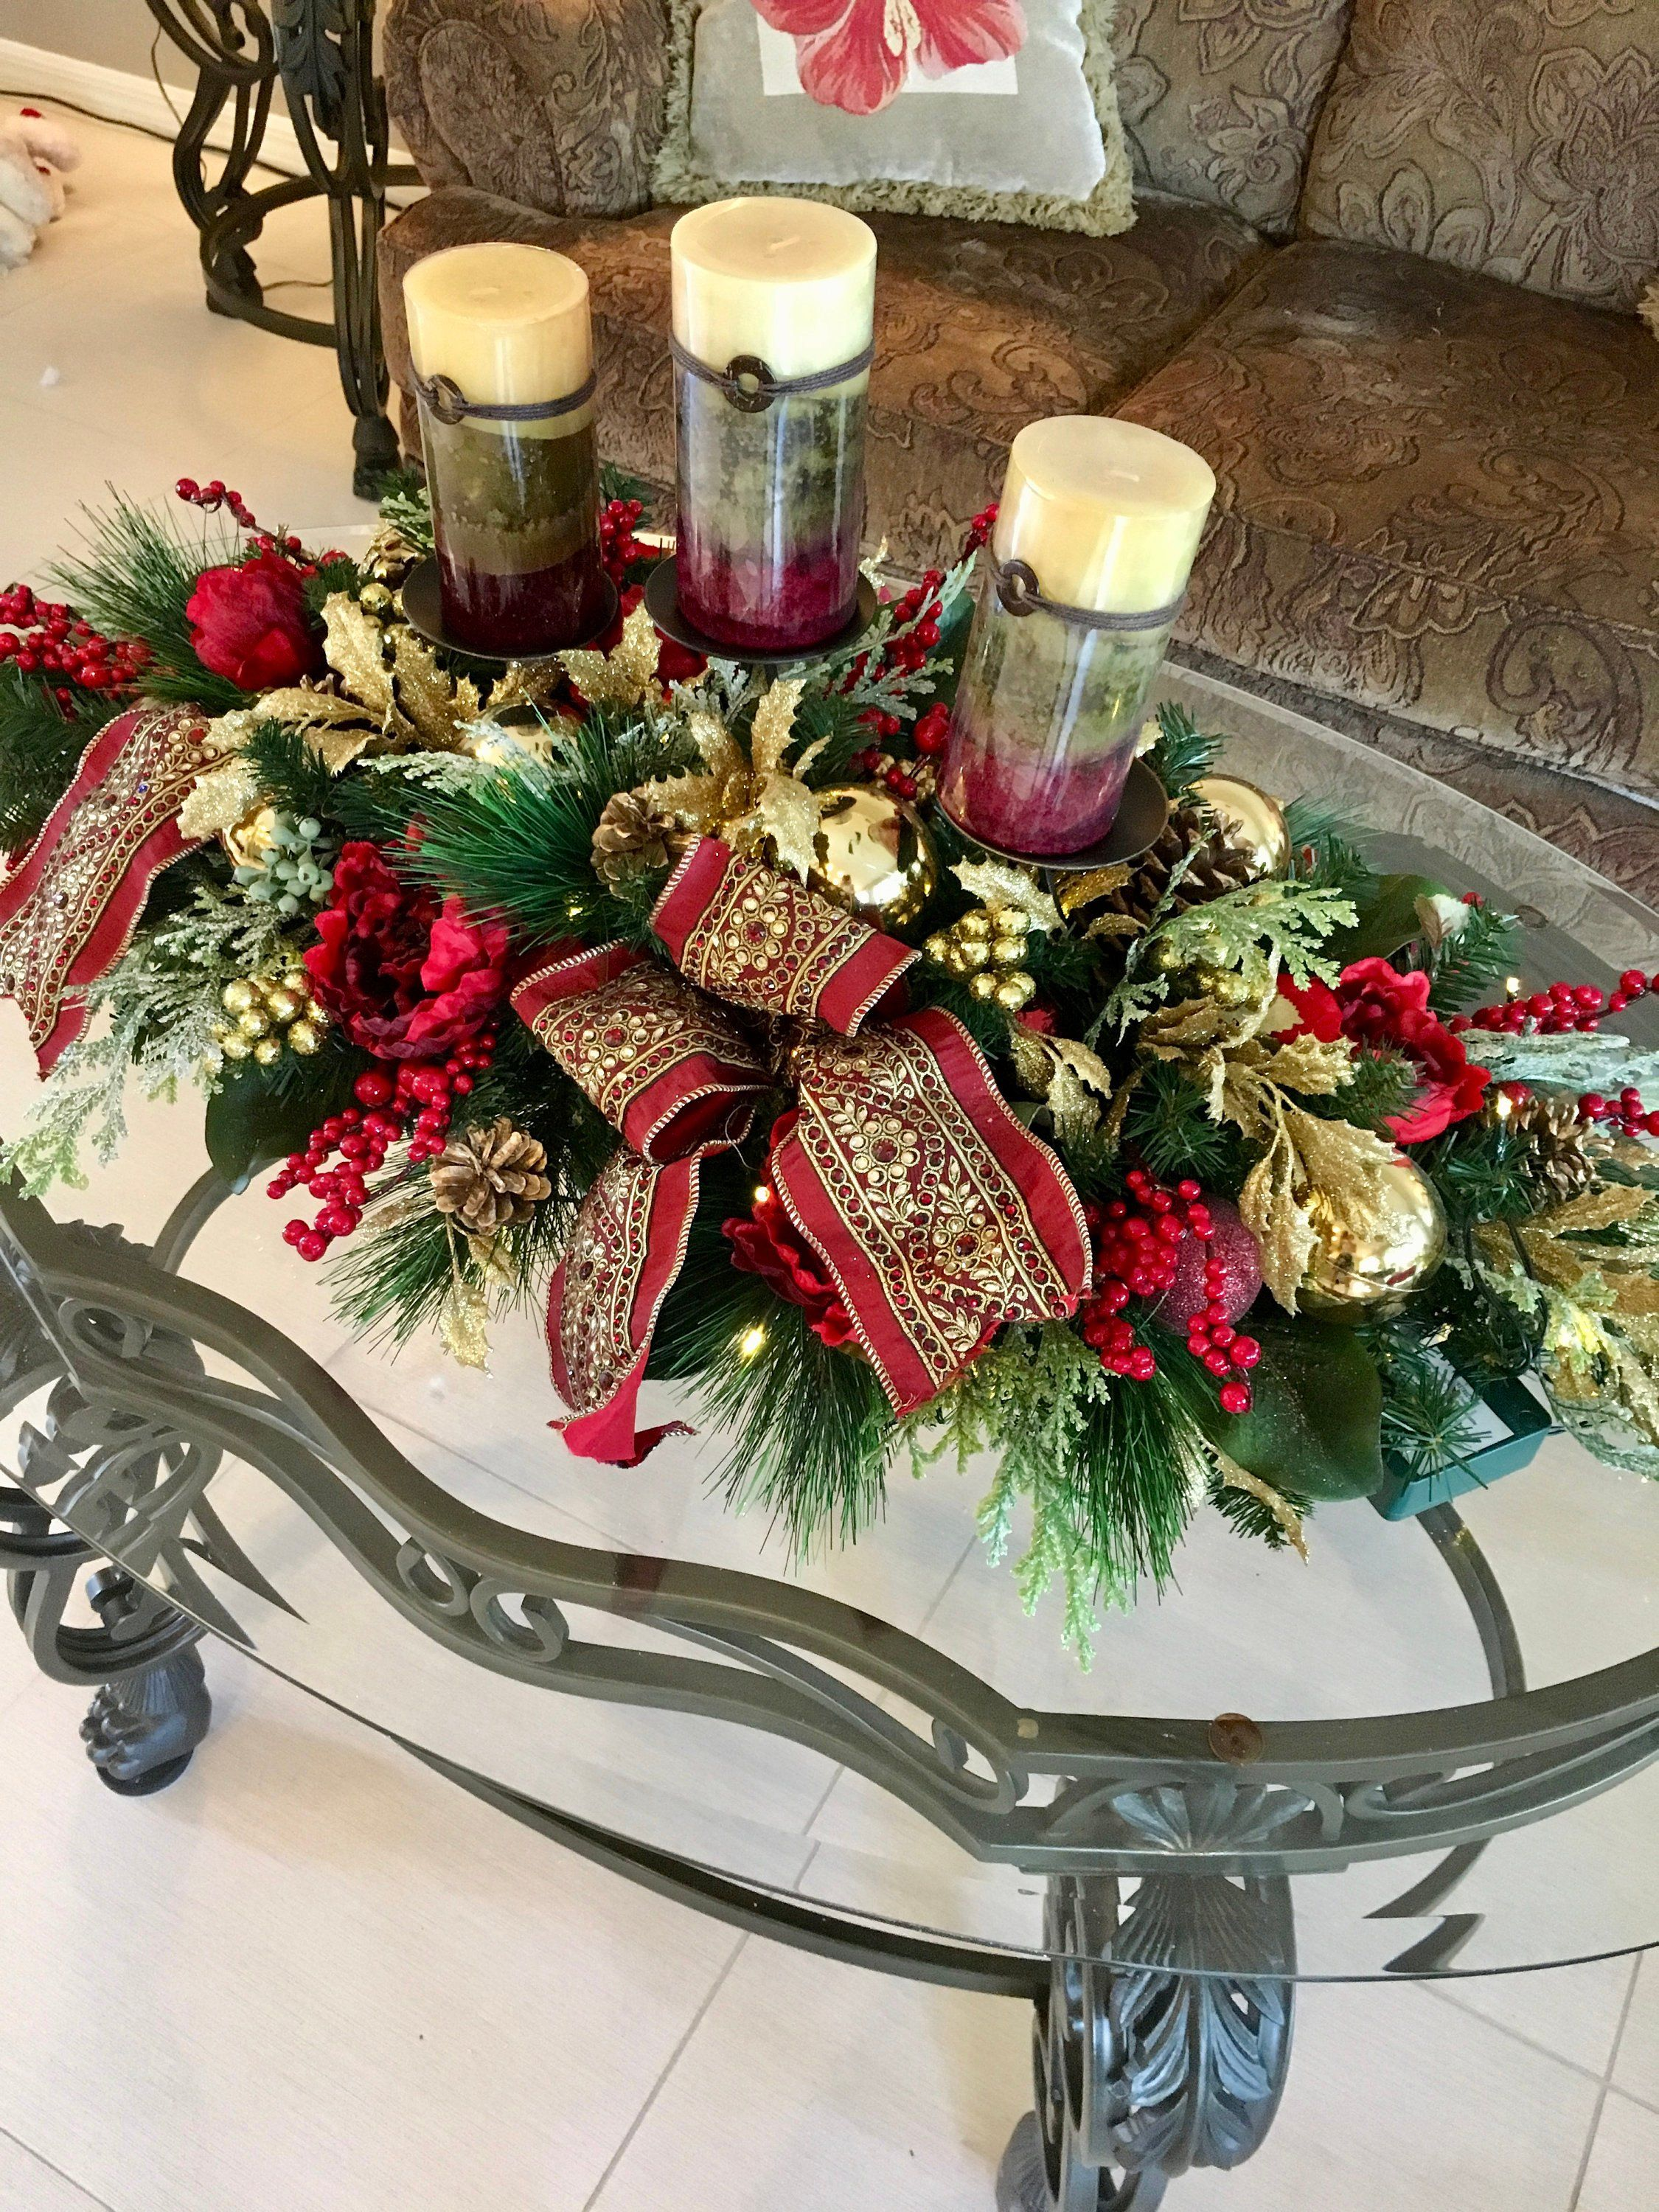 On Sale Luxury Large Centerpiece Free Shippingpeony Etsy Christmas Floral Arrangements Christmas Table Decorations Christmas Candle